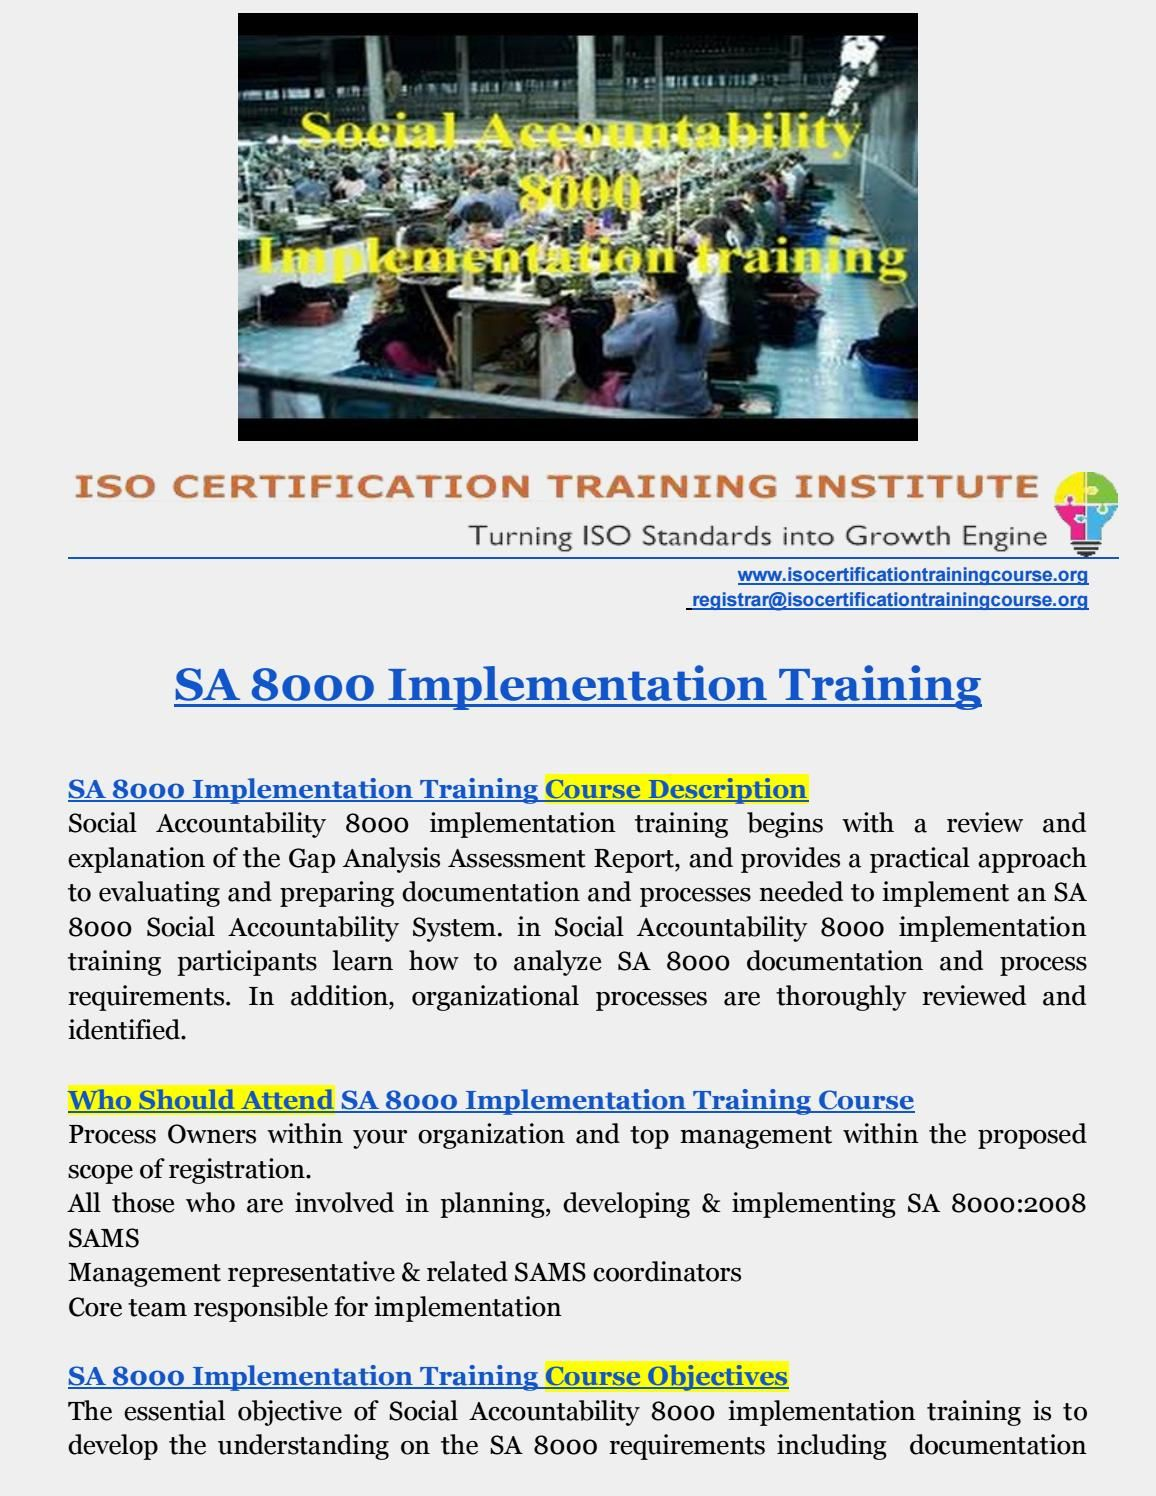 Pin On Iso Training Institute